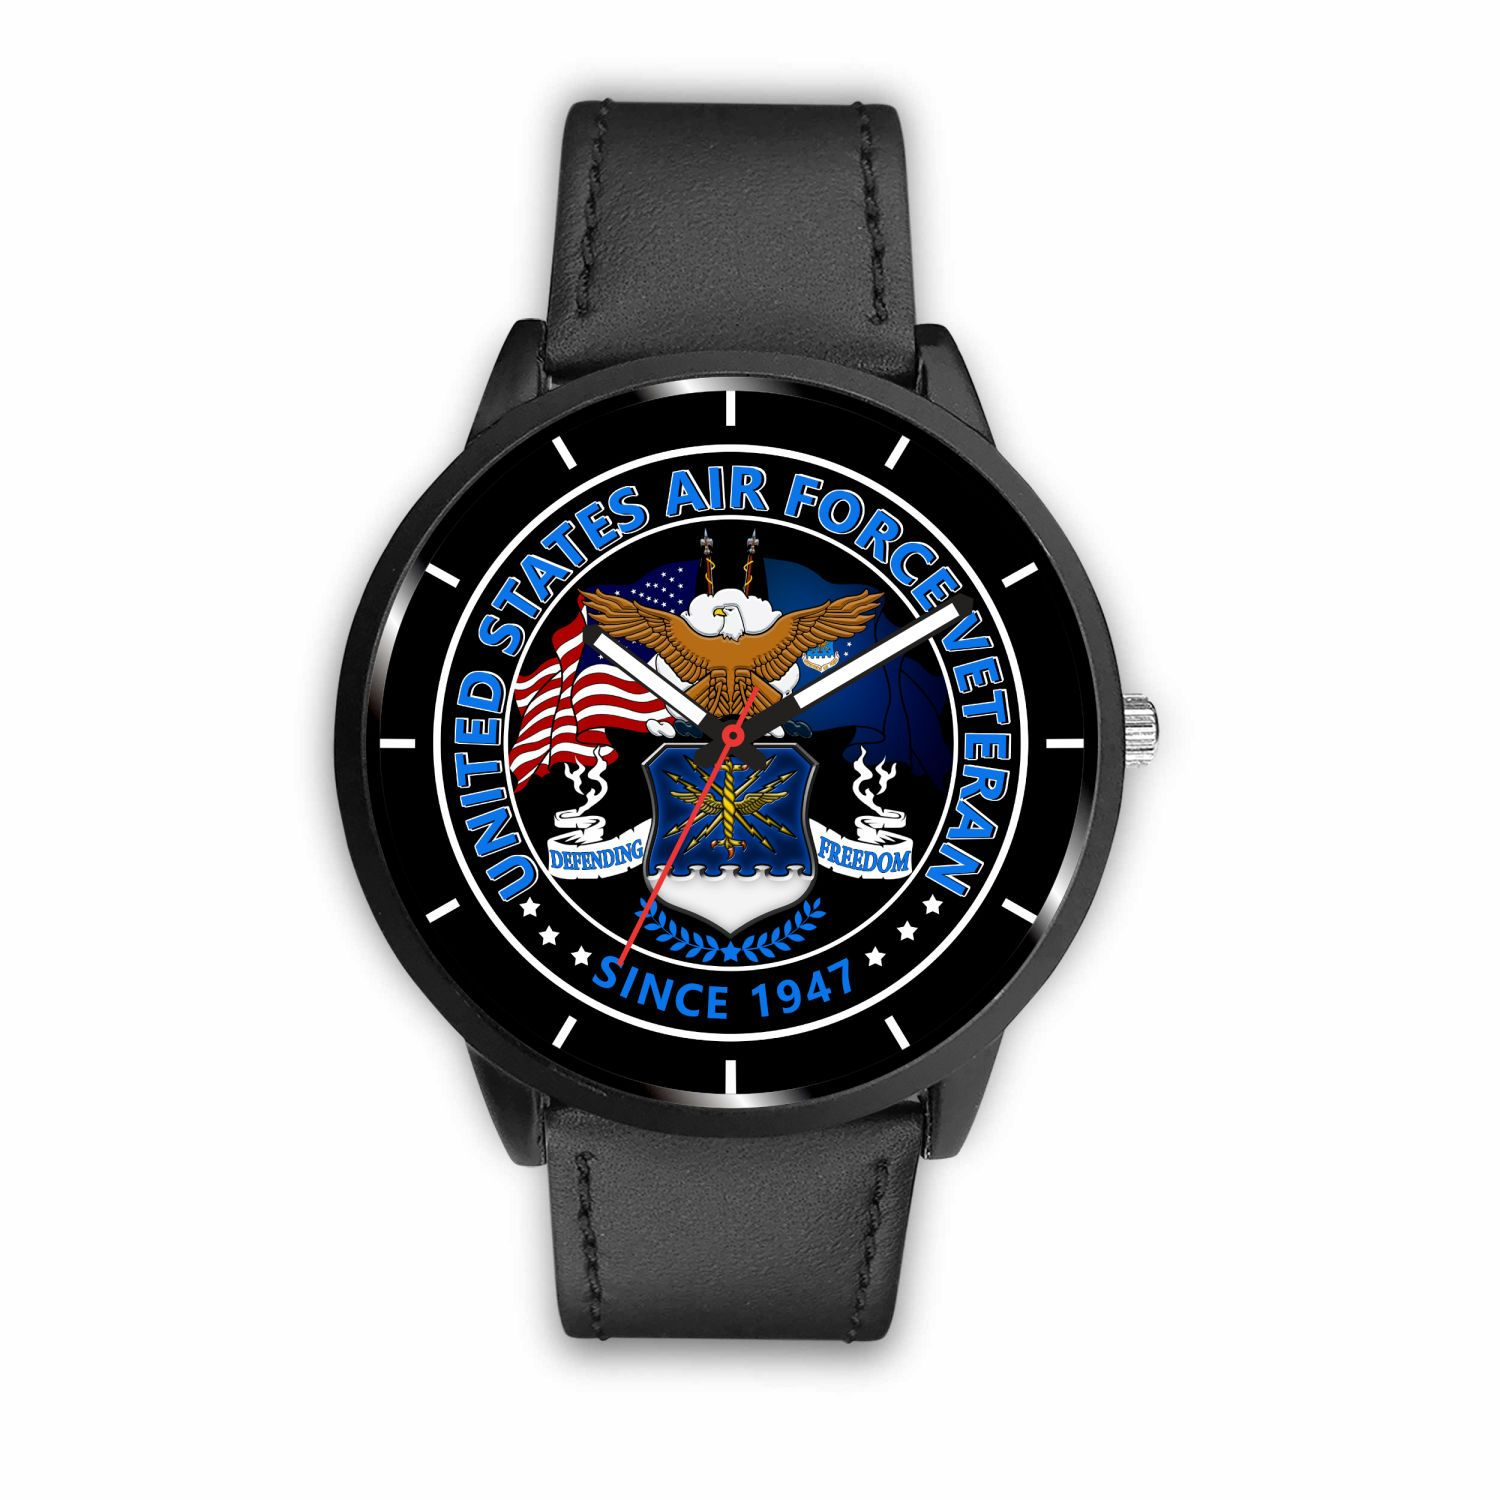 air-force-veteran_6f7bfe78-47d2-b604-77a0-5842cd80ccf5 Air force veteran since 1947 WATCH  %tag